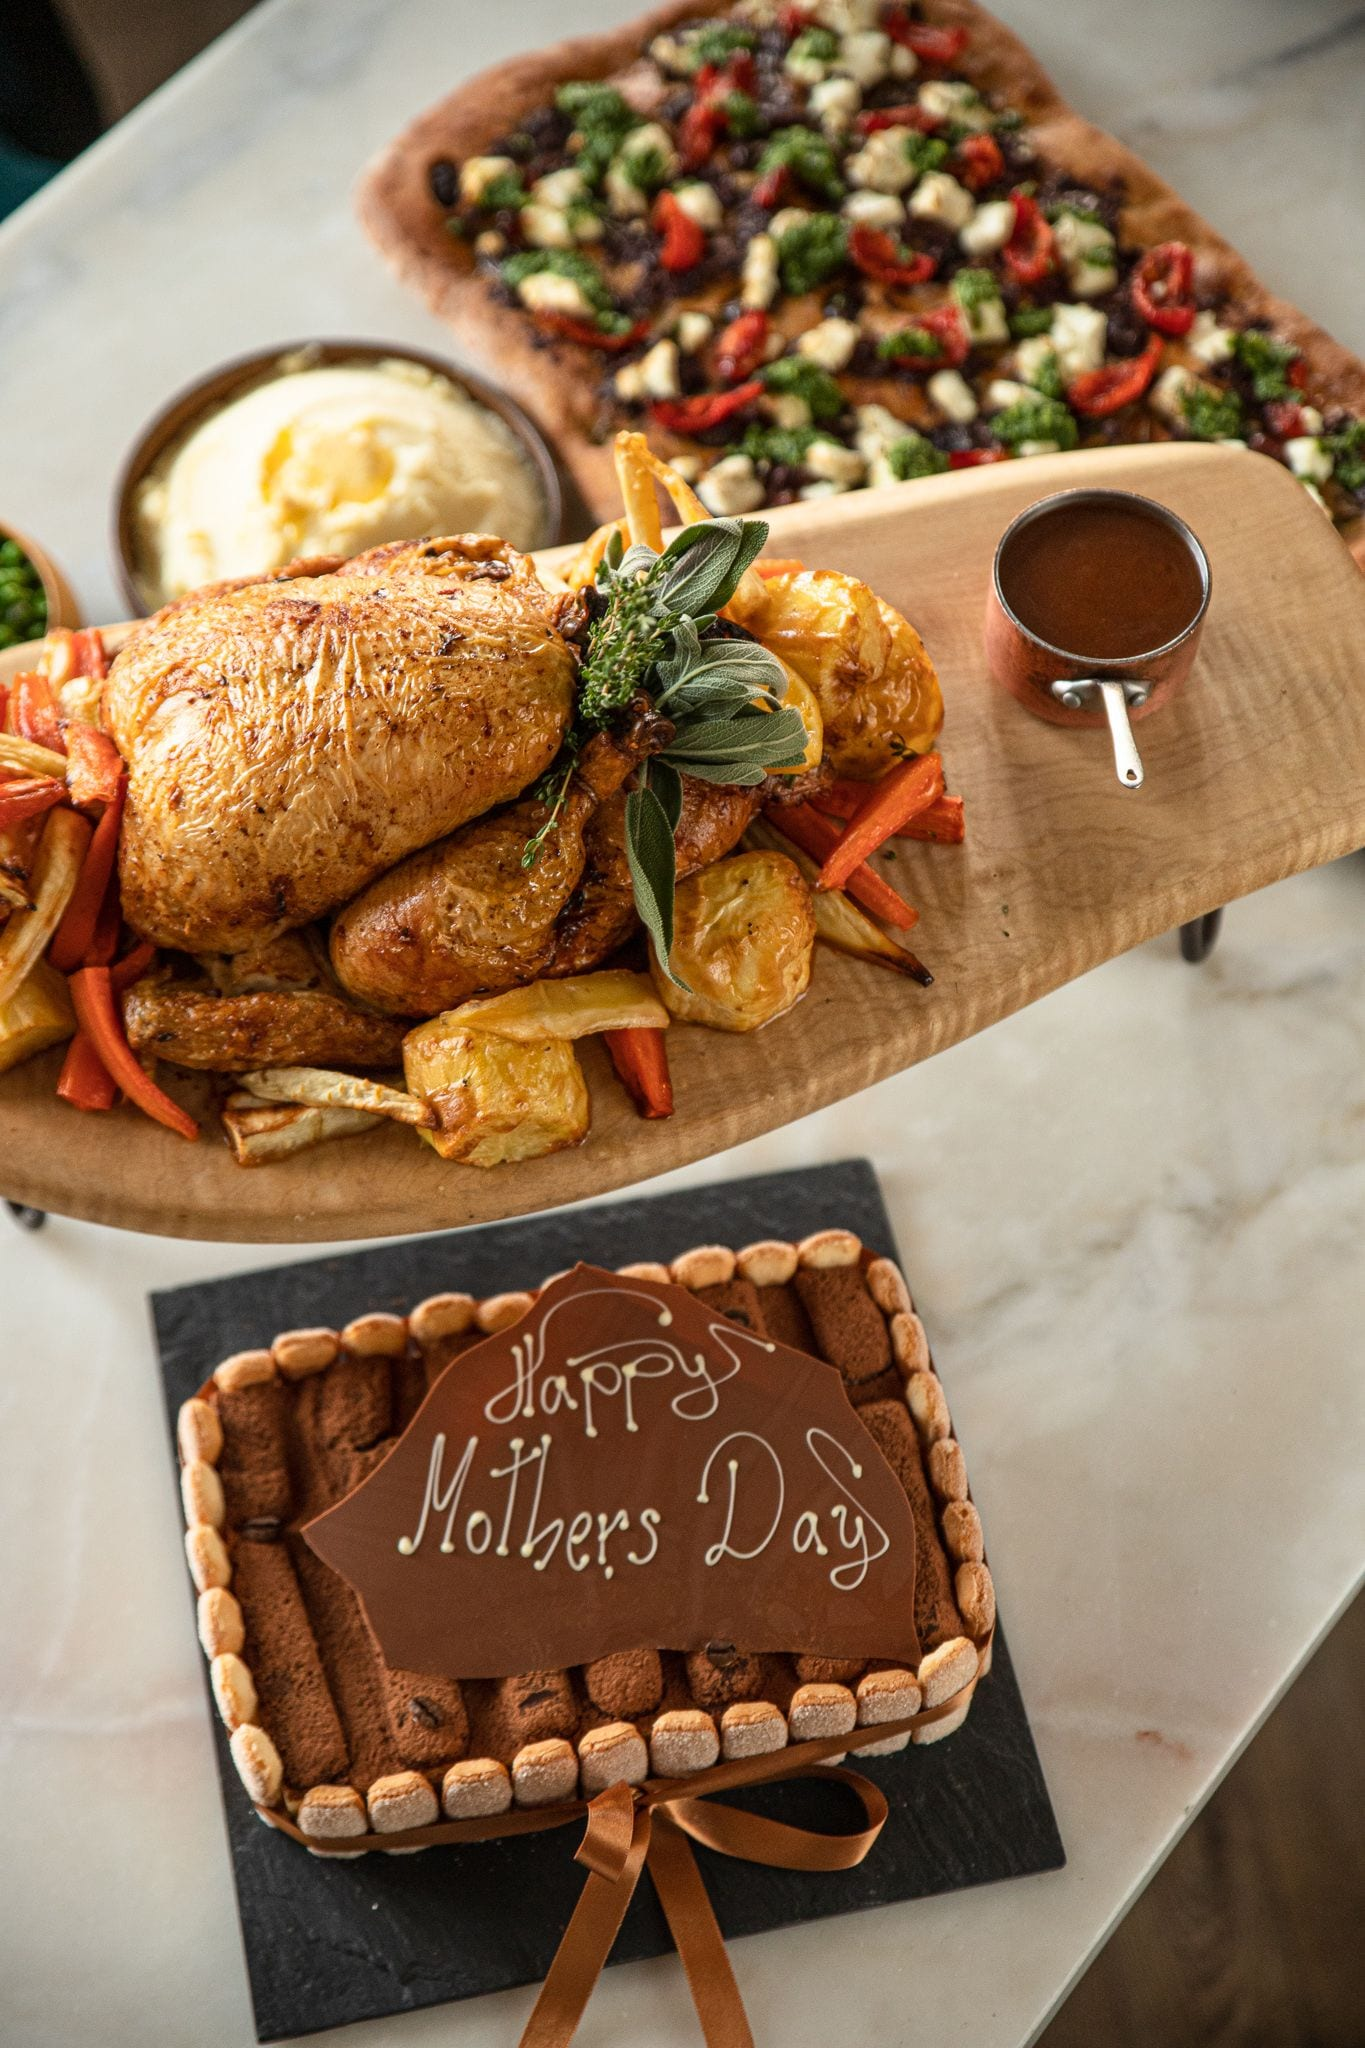 MOTHER'S DAY WITH AT HOME RESTAURANT KITS FROM SOPHIE'S ROOFTOP & MACKENZIE'S